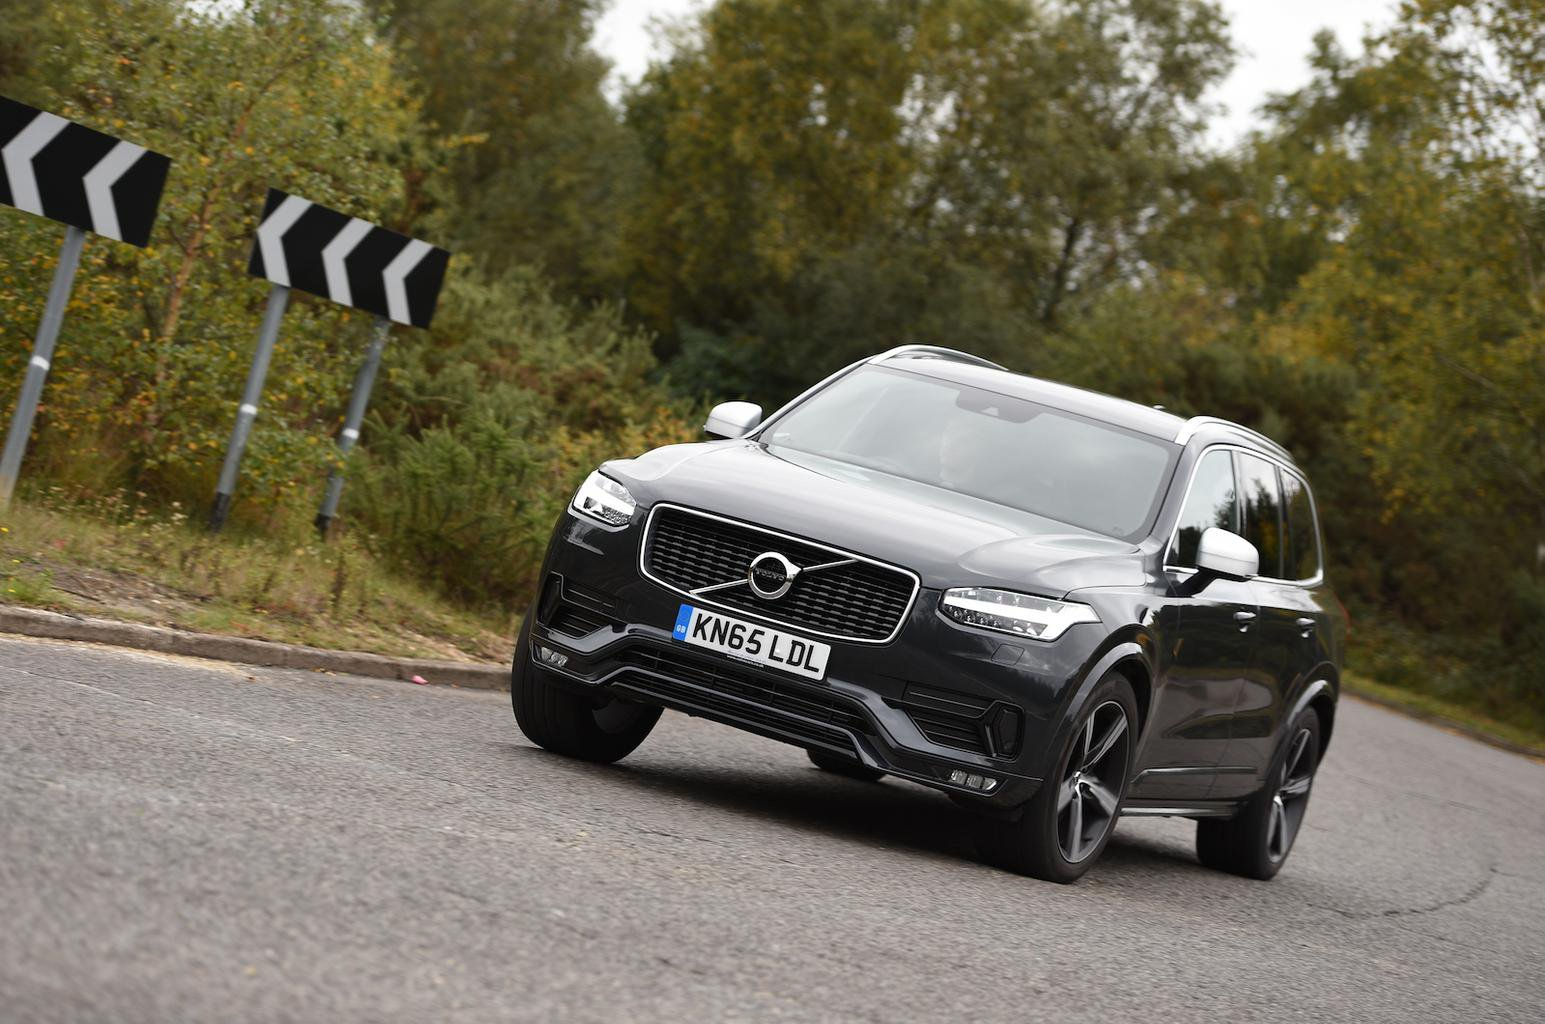 2015 Volvo XC90 D5 AWD R-Design review